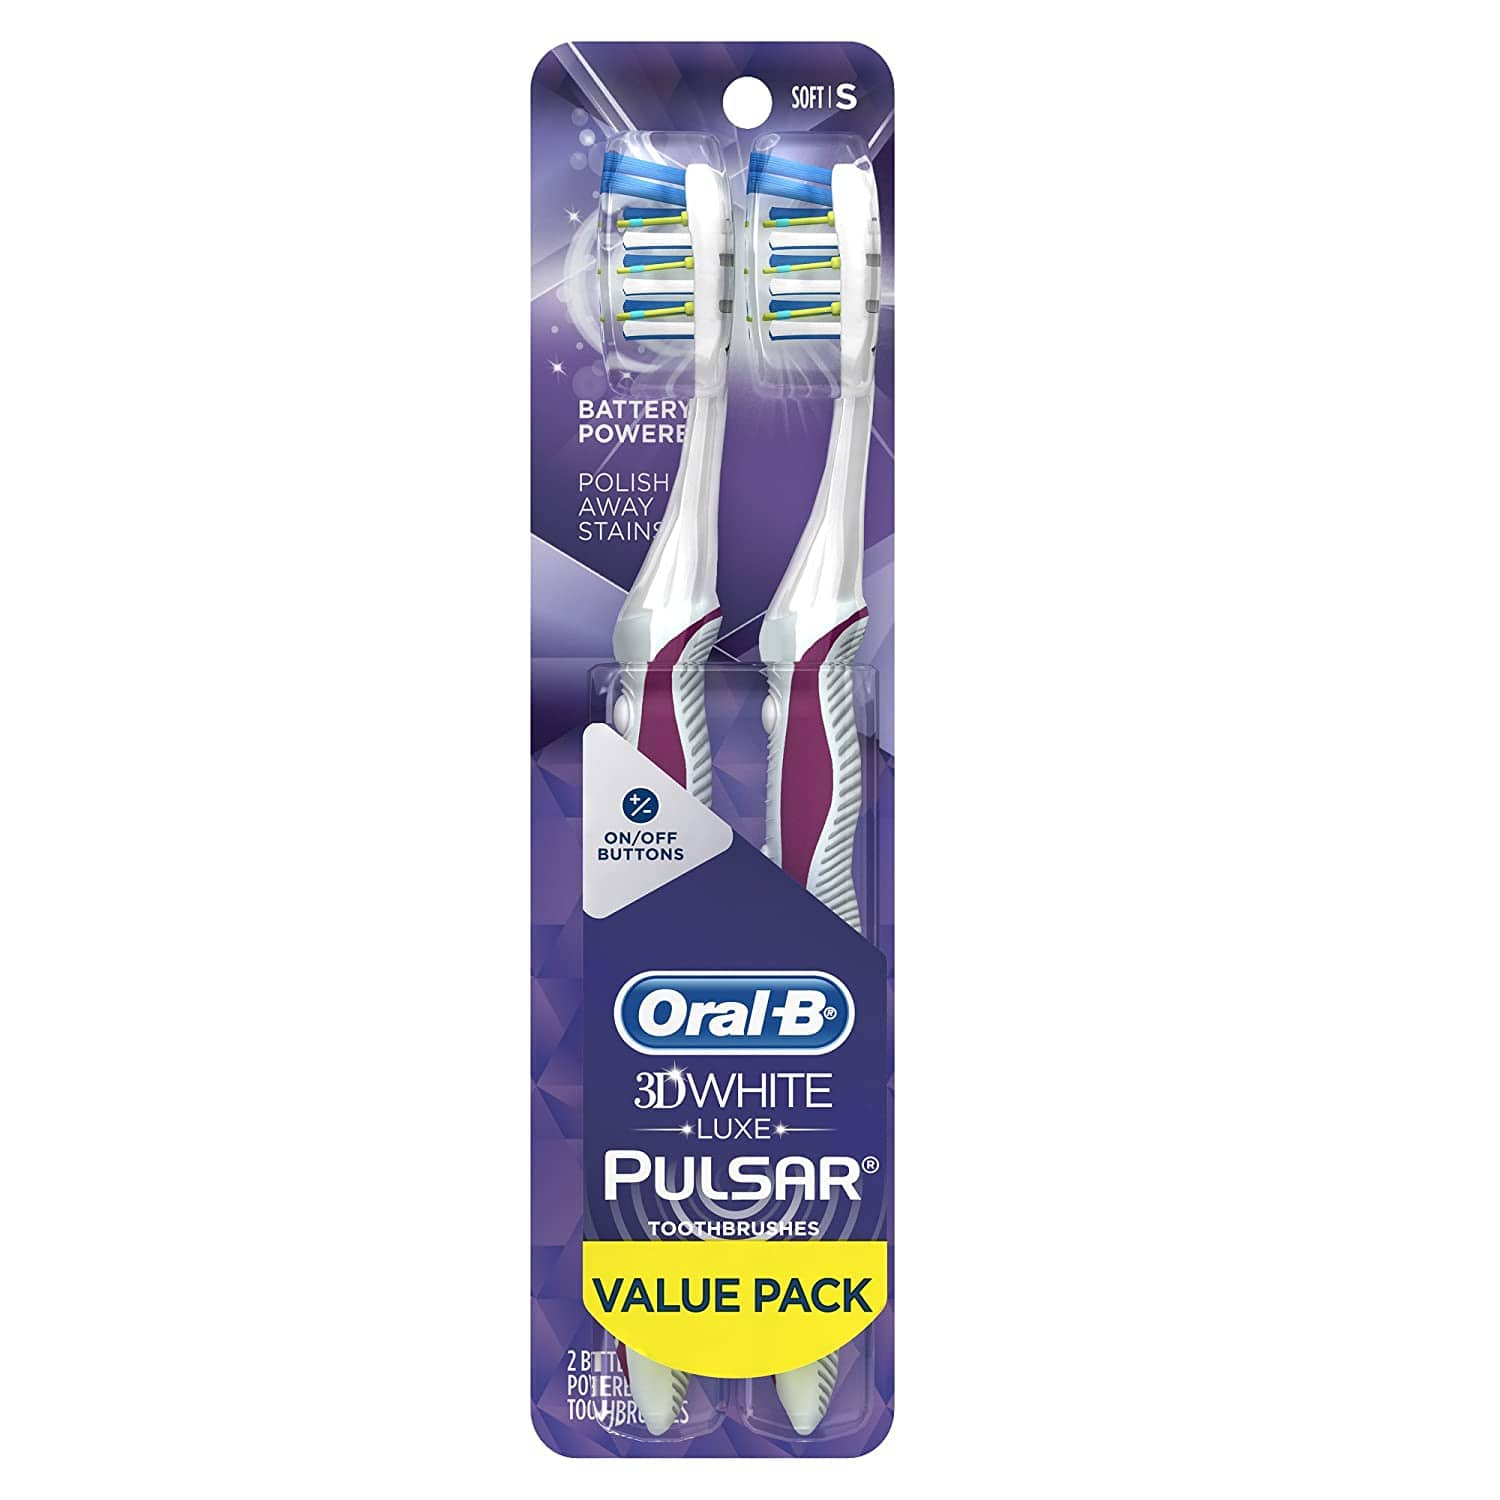 Amazon has Oral-B Pulsar 3d White Advanced Vivid Soft Toothbrush Twin Pack